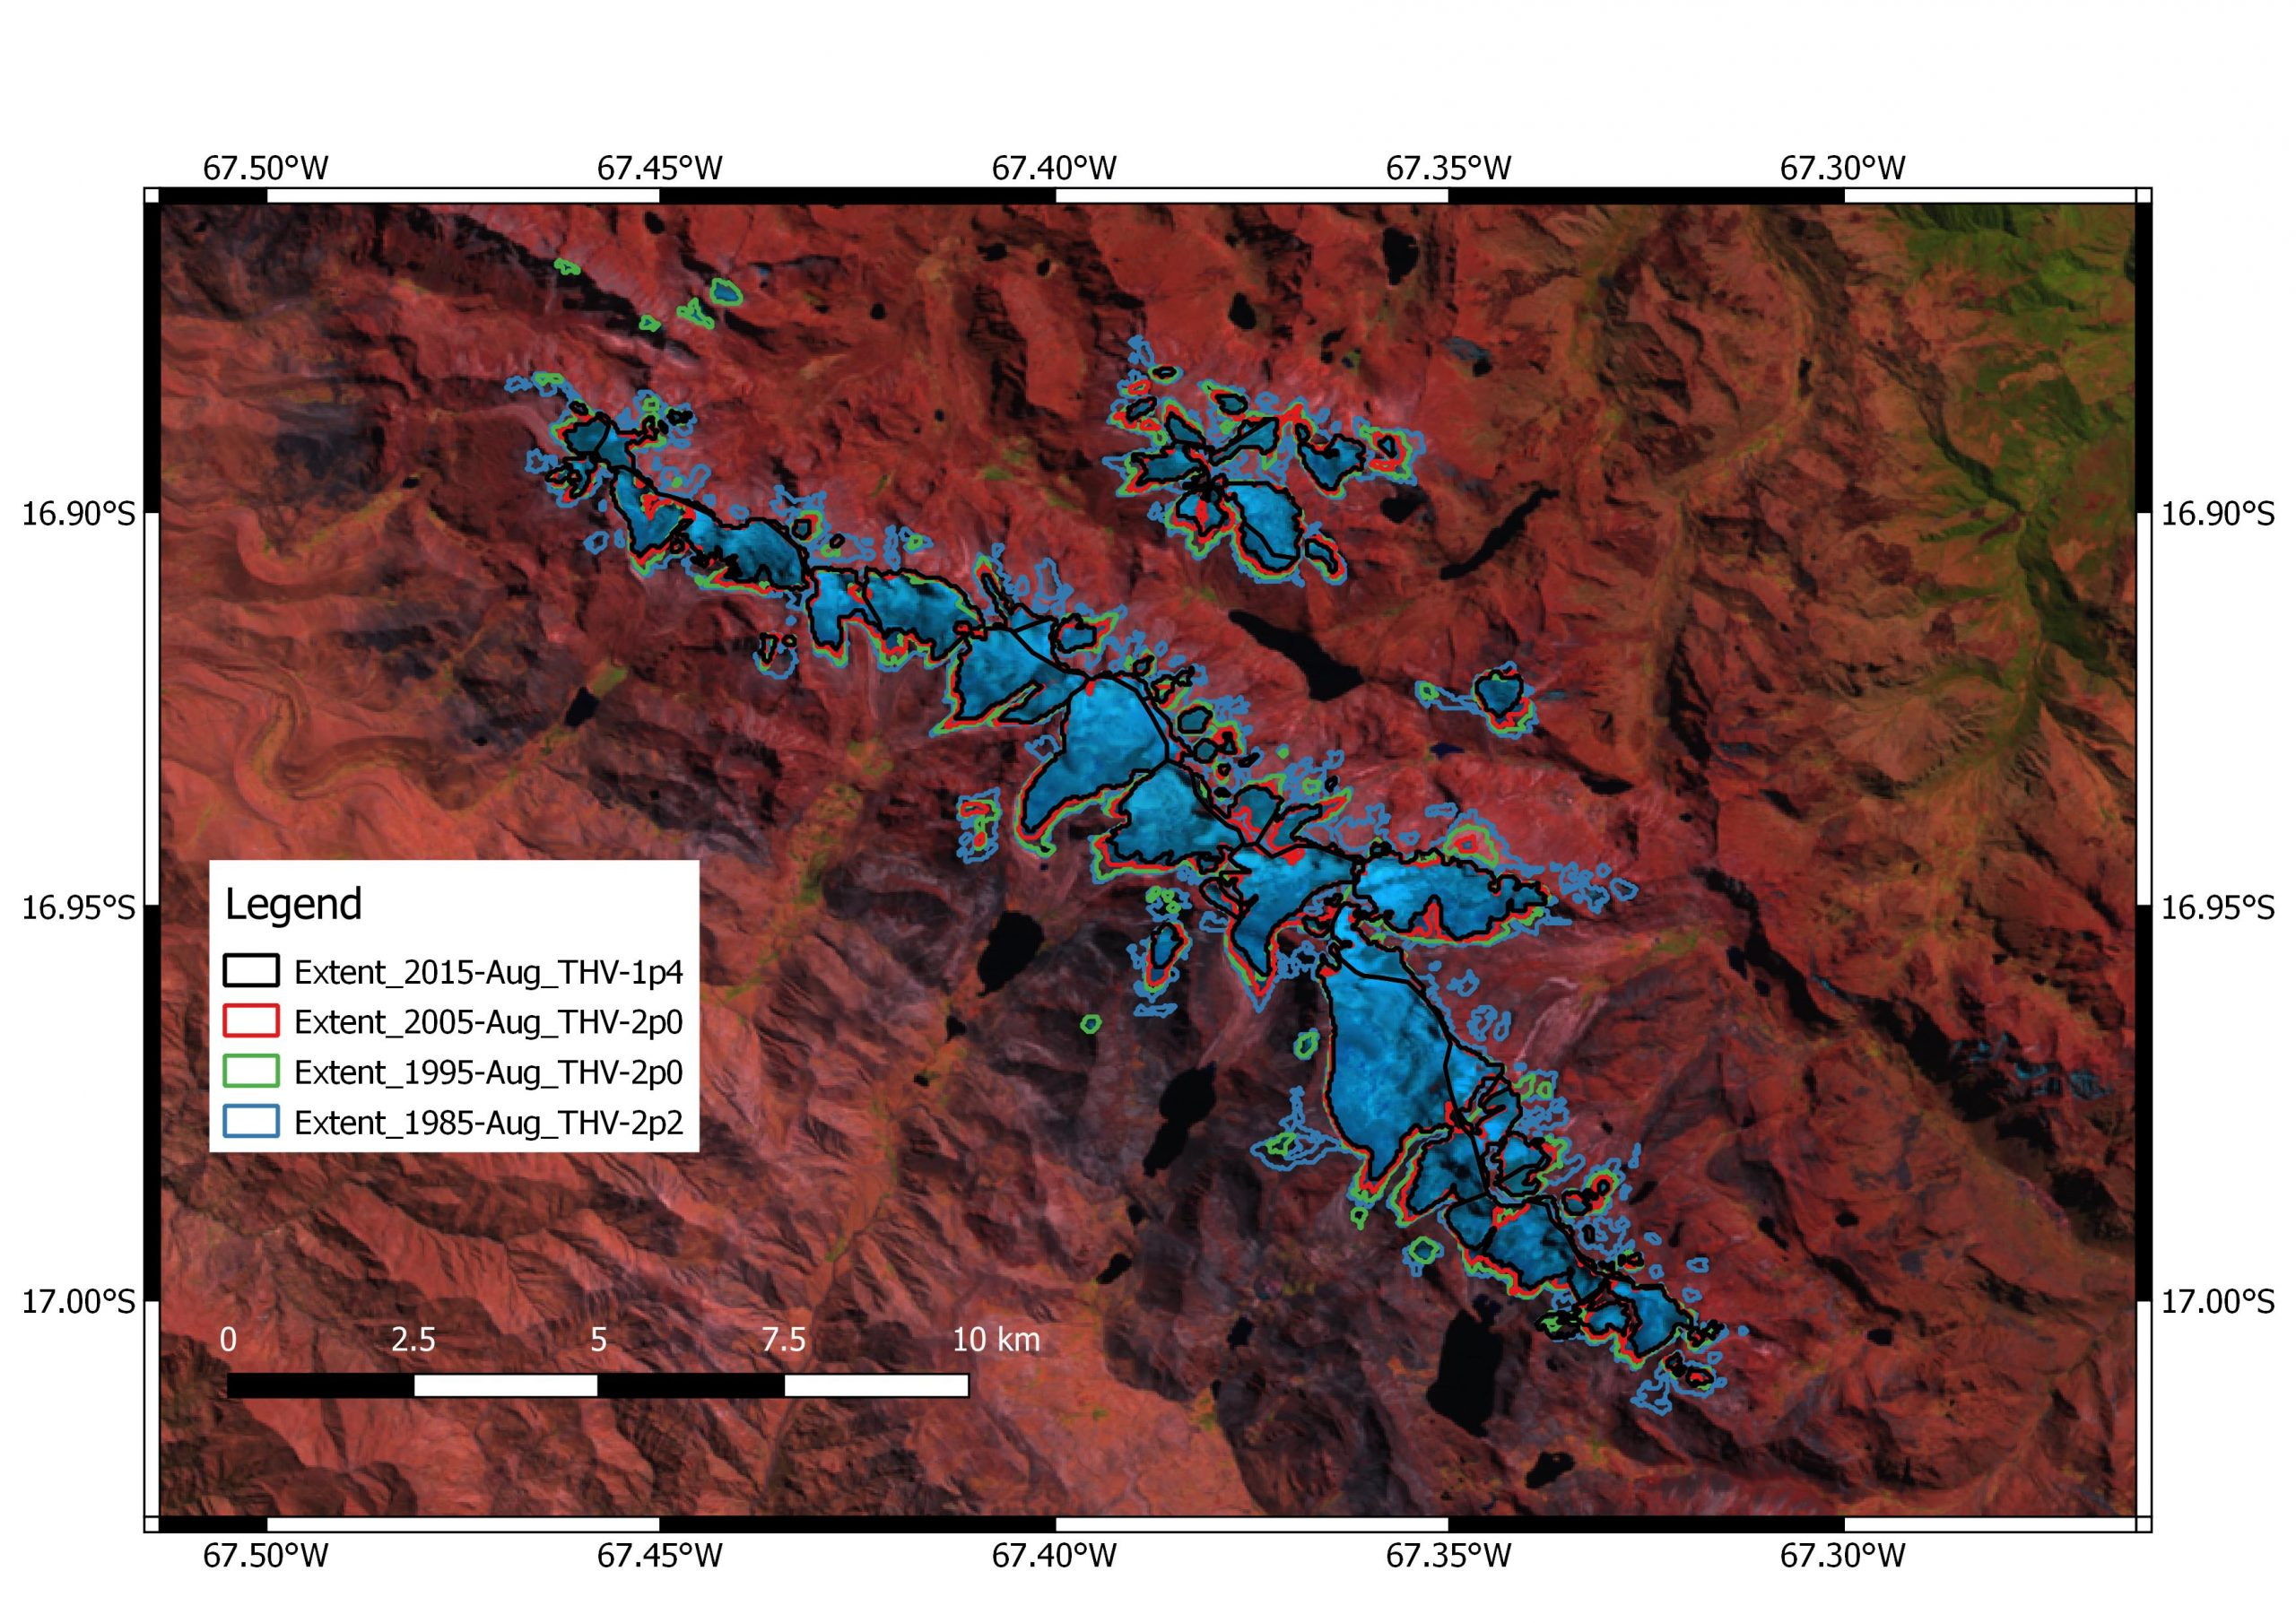 Figure 11: End-result glacier extent (1985) after image processing.